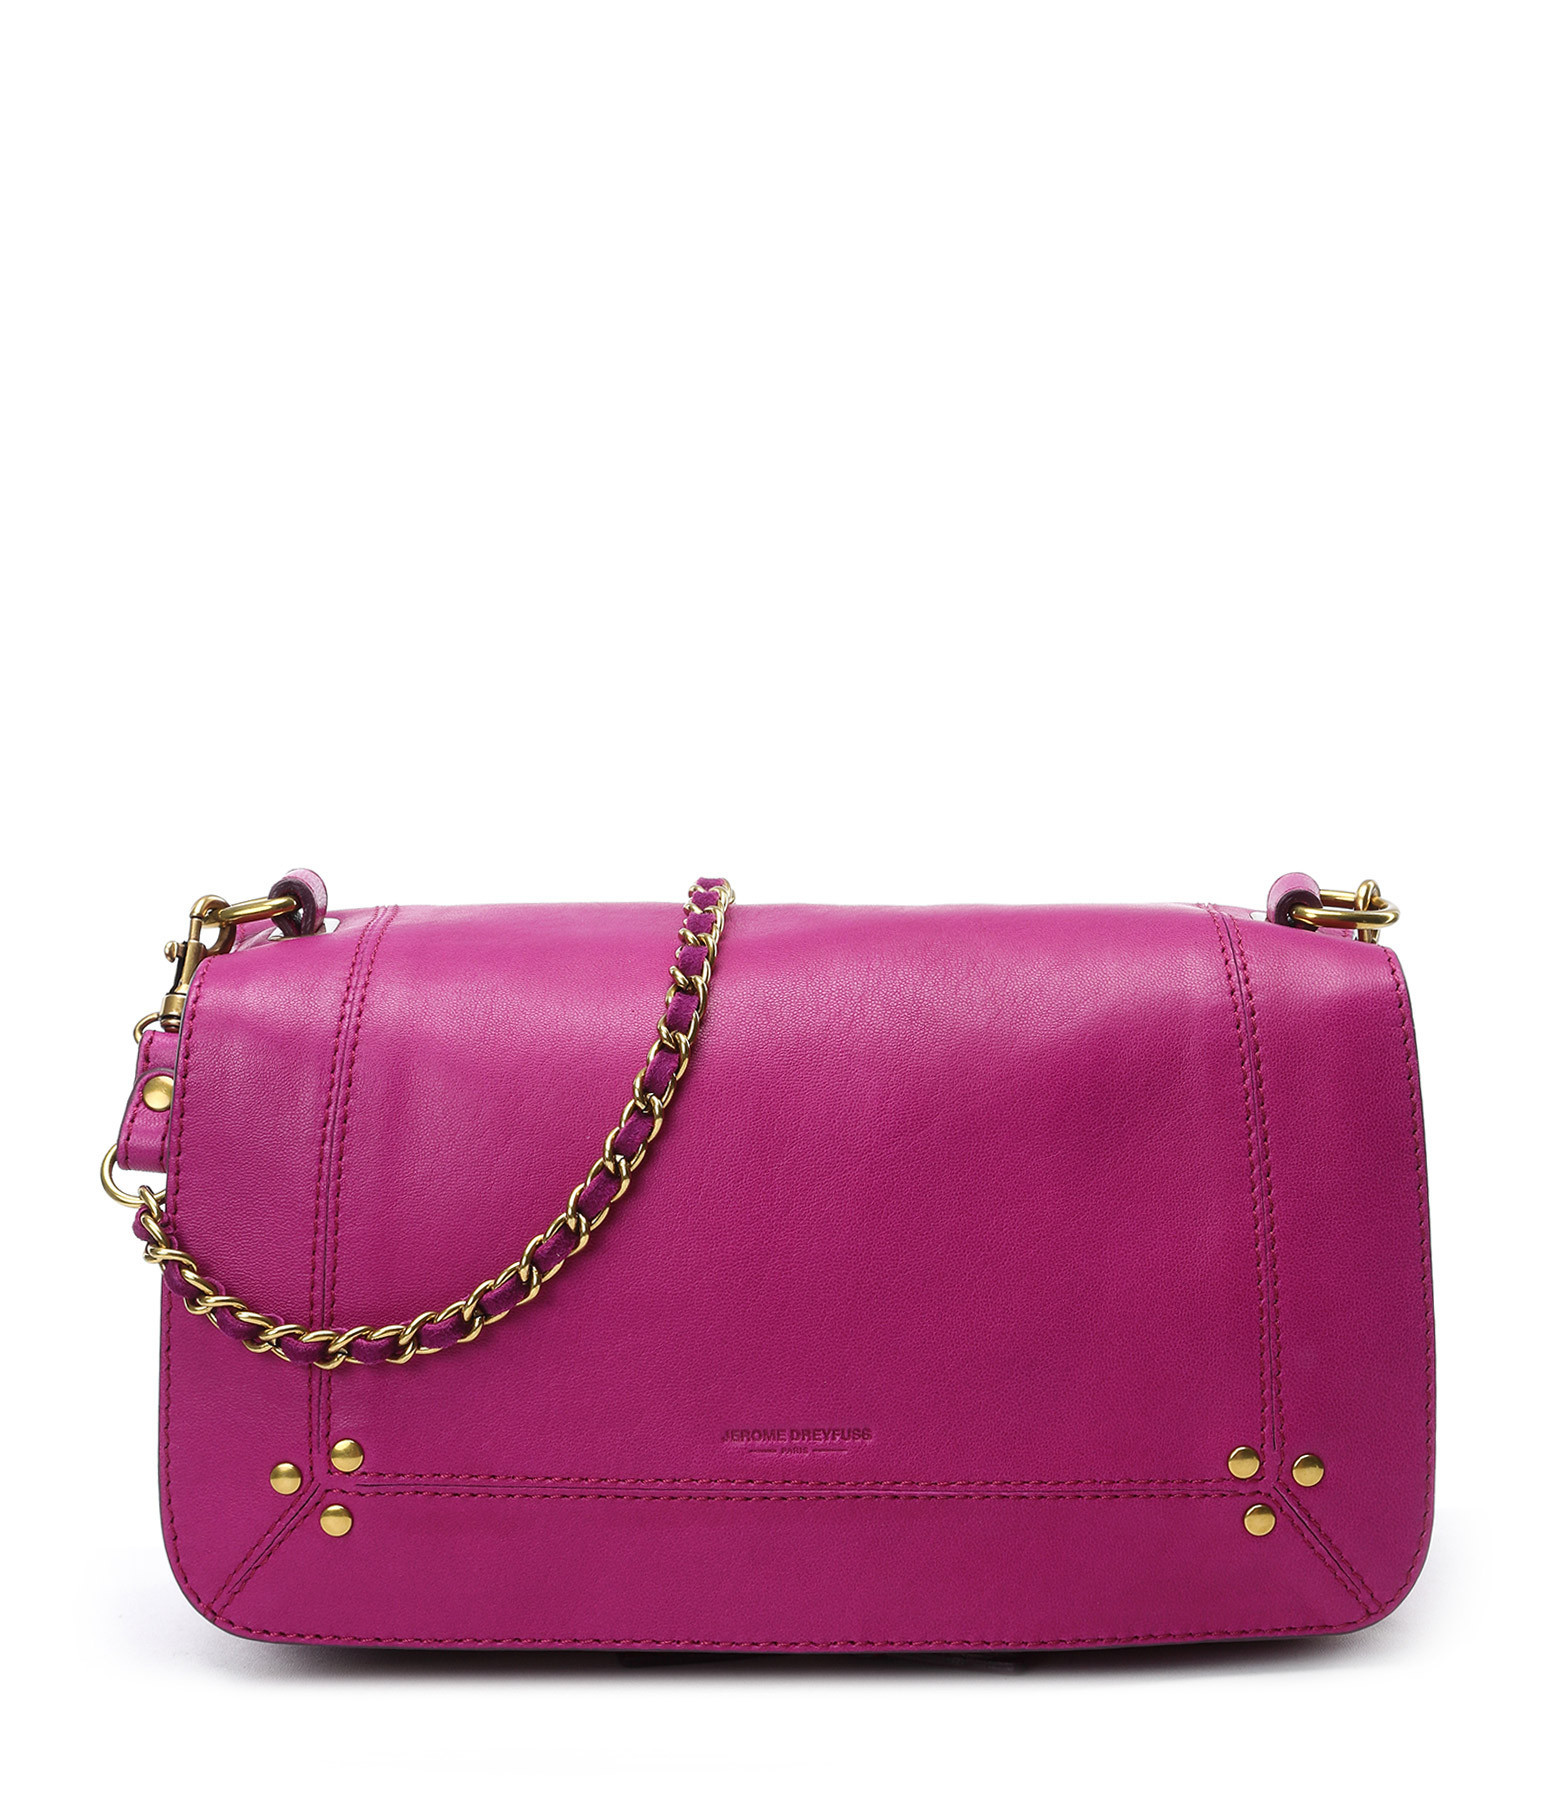 Bag Leather Work   Bobi pink bougainvillea - Jérôme Dreyfuss 1e8abe62d